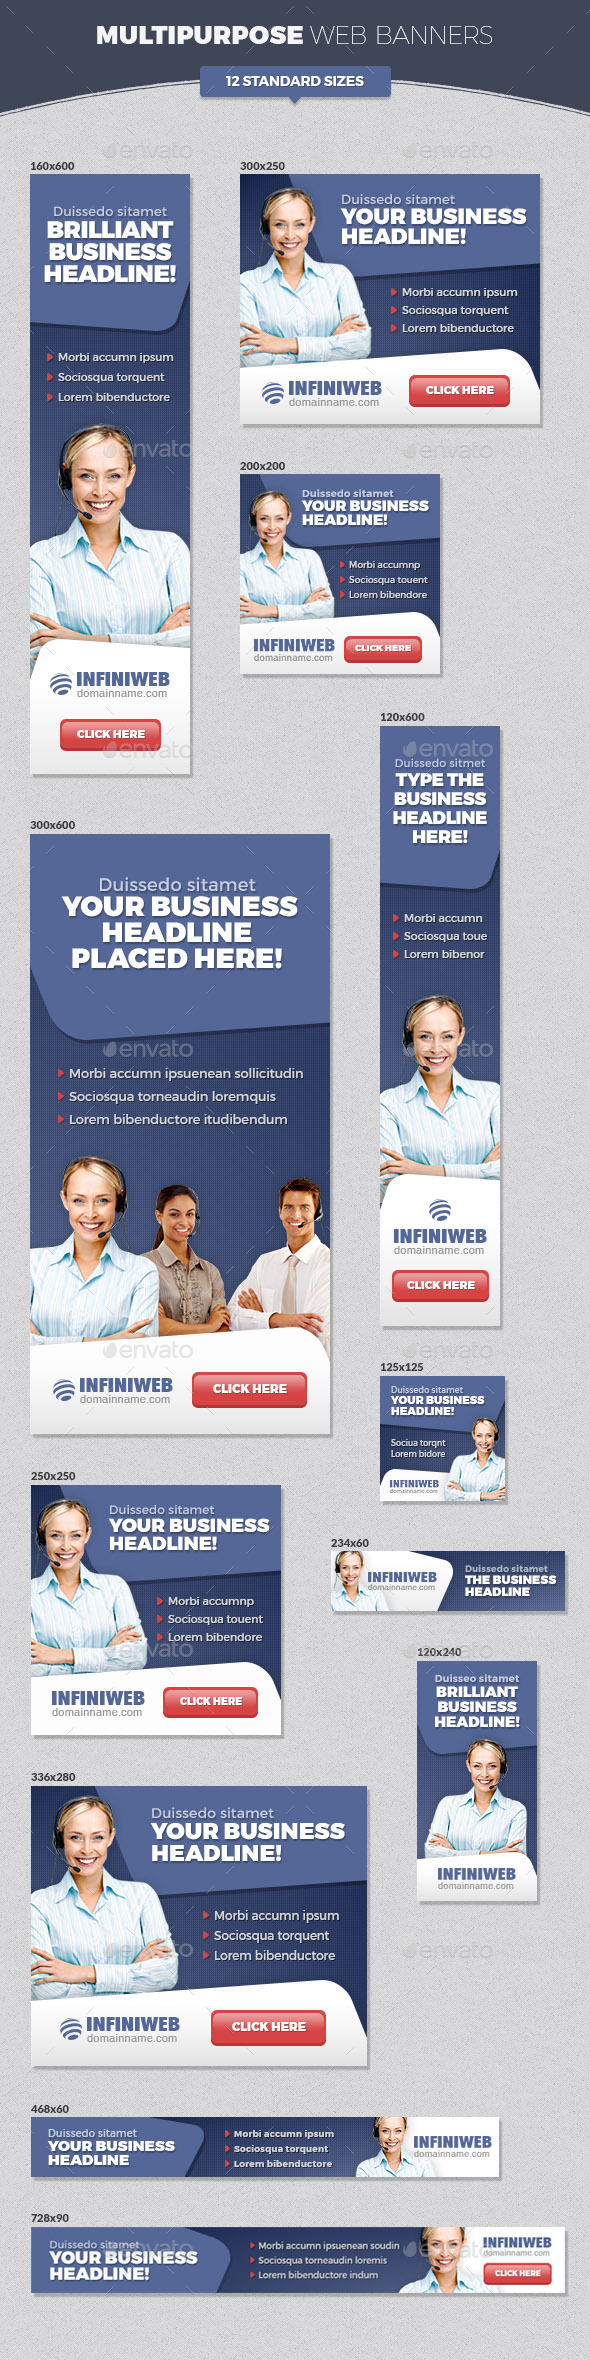 GraphicRiver Multipurpose Web Banners 11453044